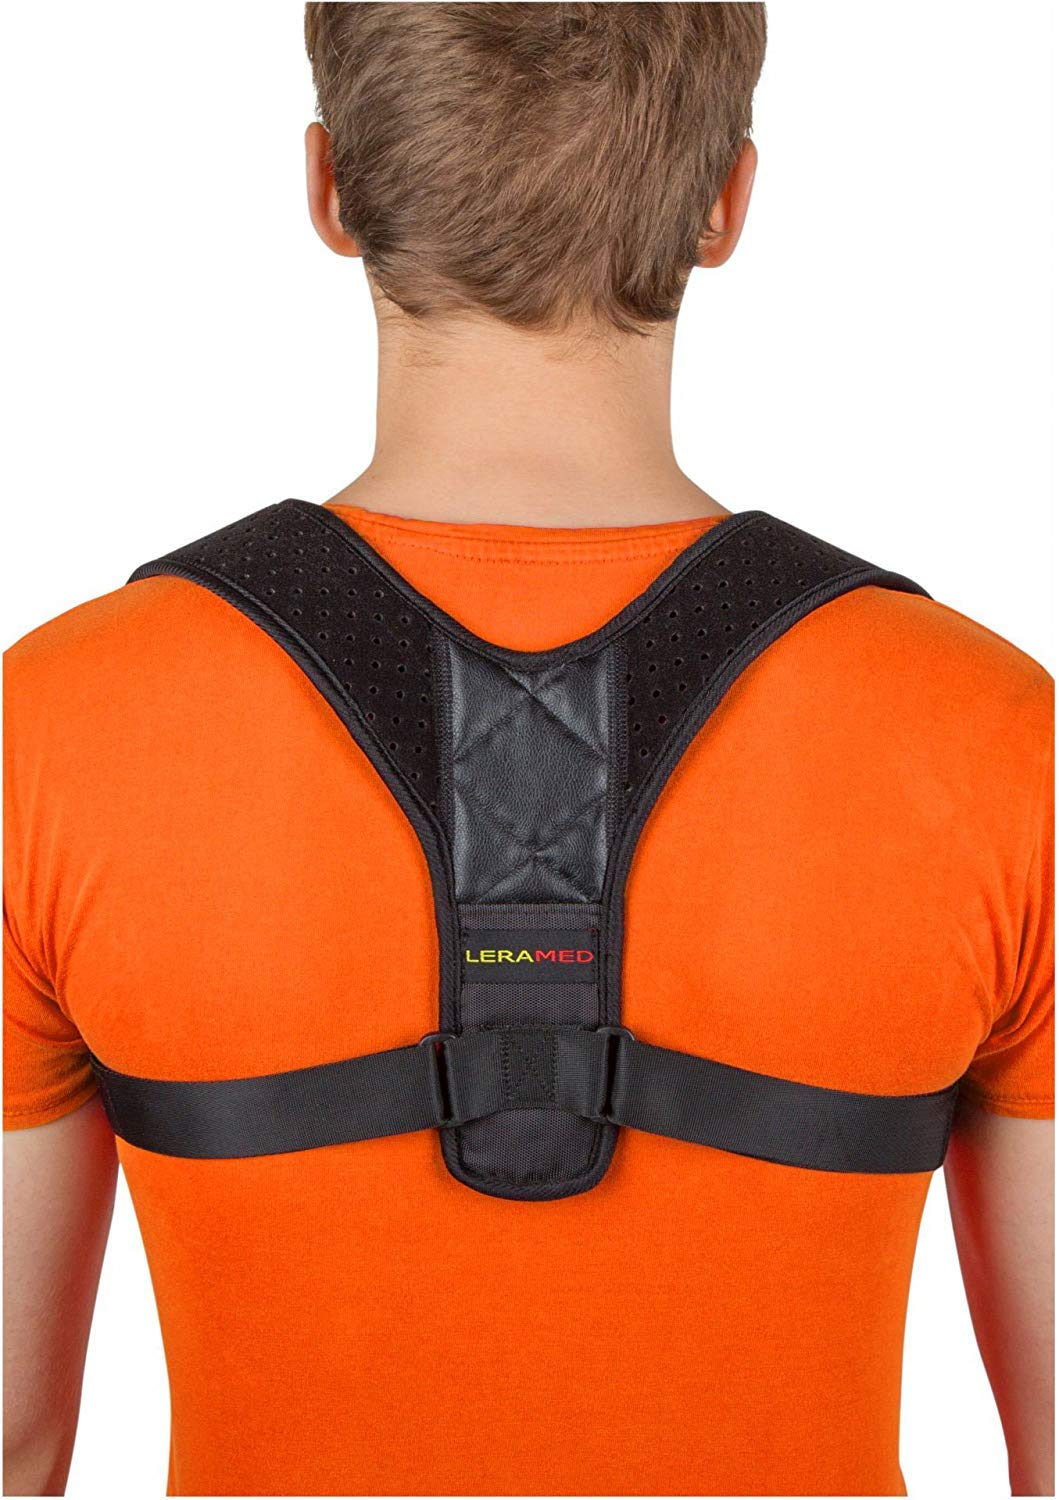 Posture Corrector For Women Men - Back Brace - Posture Brace - Effective Comfortable Adjustable Posture Correct Brace - Posture Support - Kyphosis Brace - Muscle Pain Reliever - Back Pain Reliever